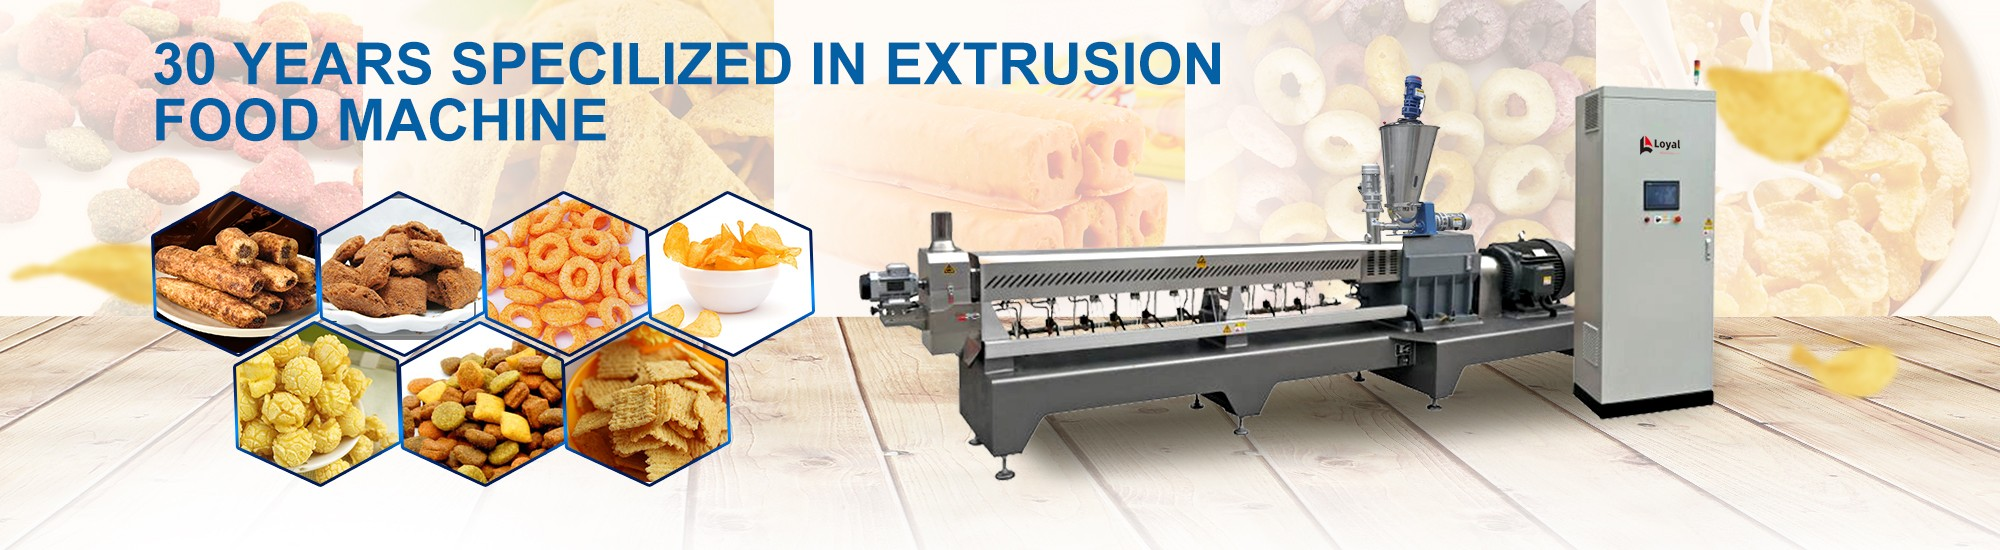 30 years specilized in extrusion food machine